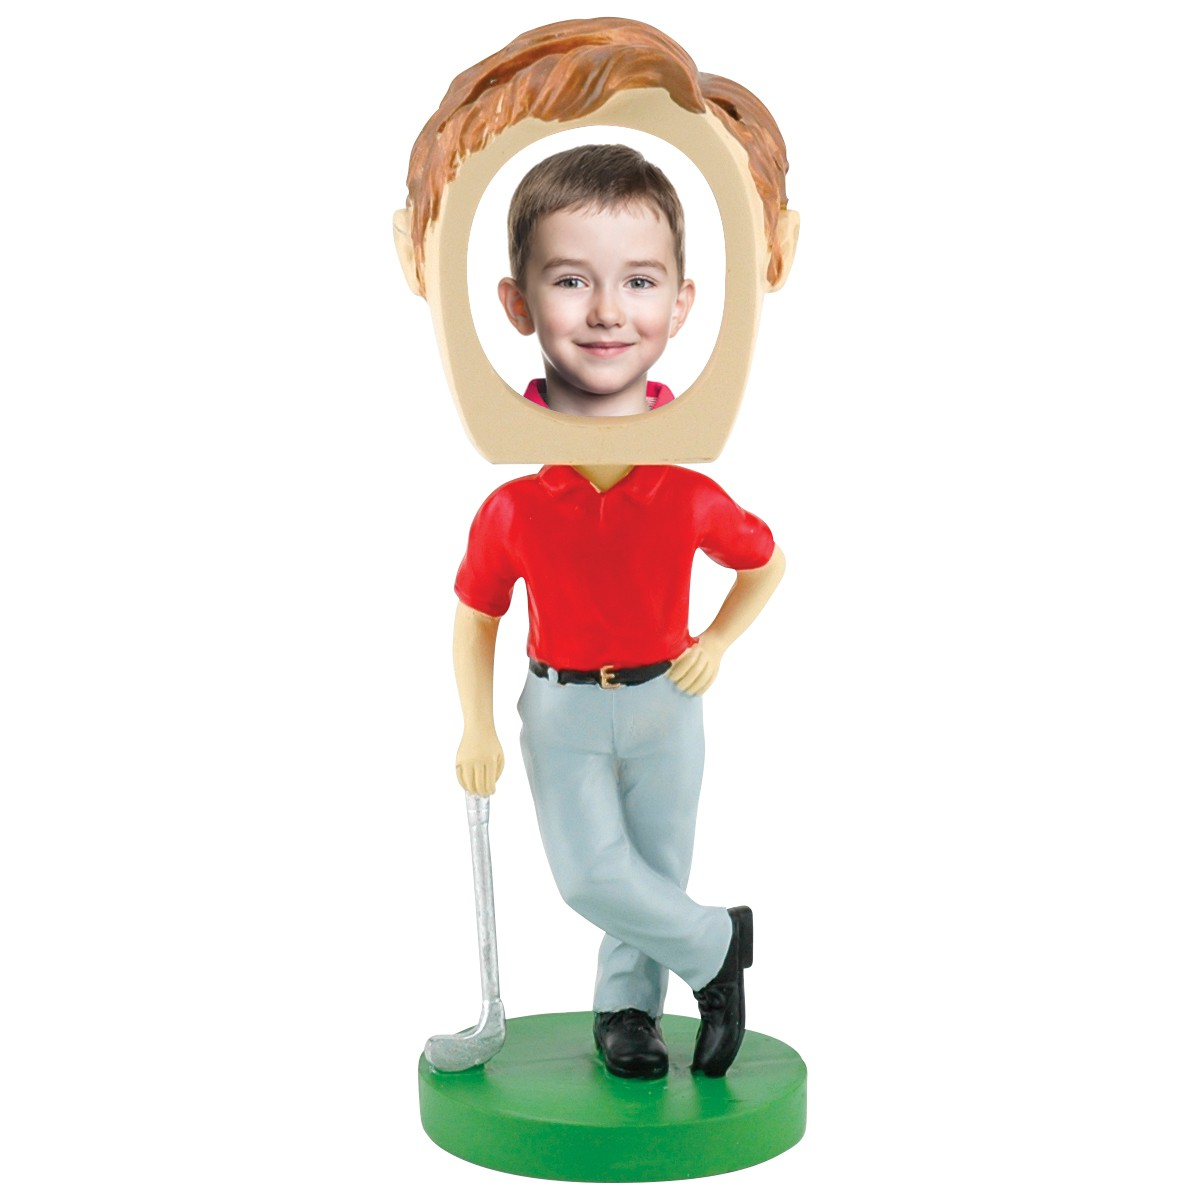 Wholesale Golf Photo Bobble Head